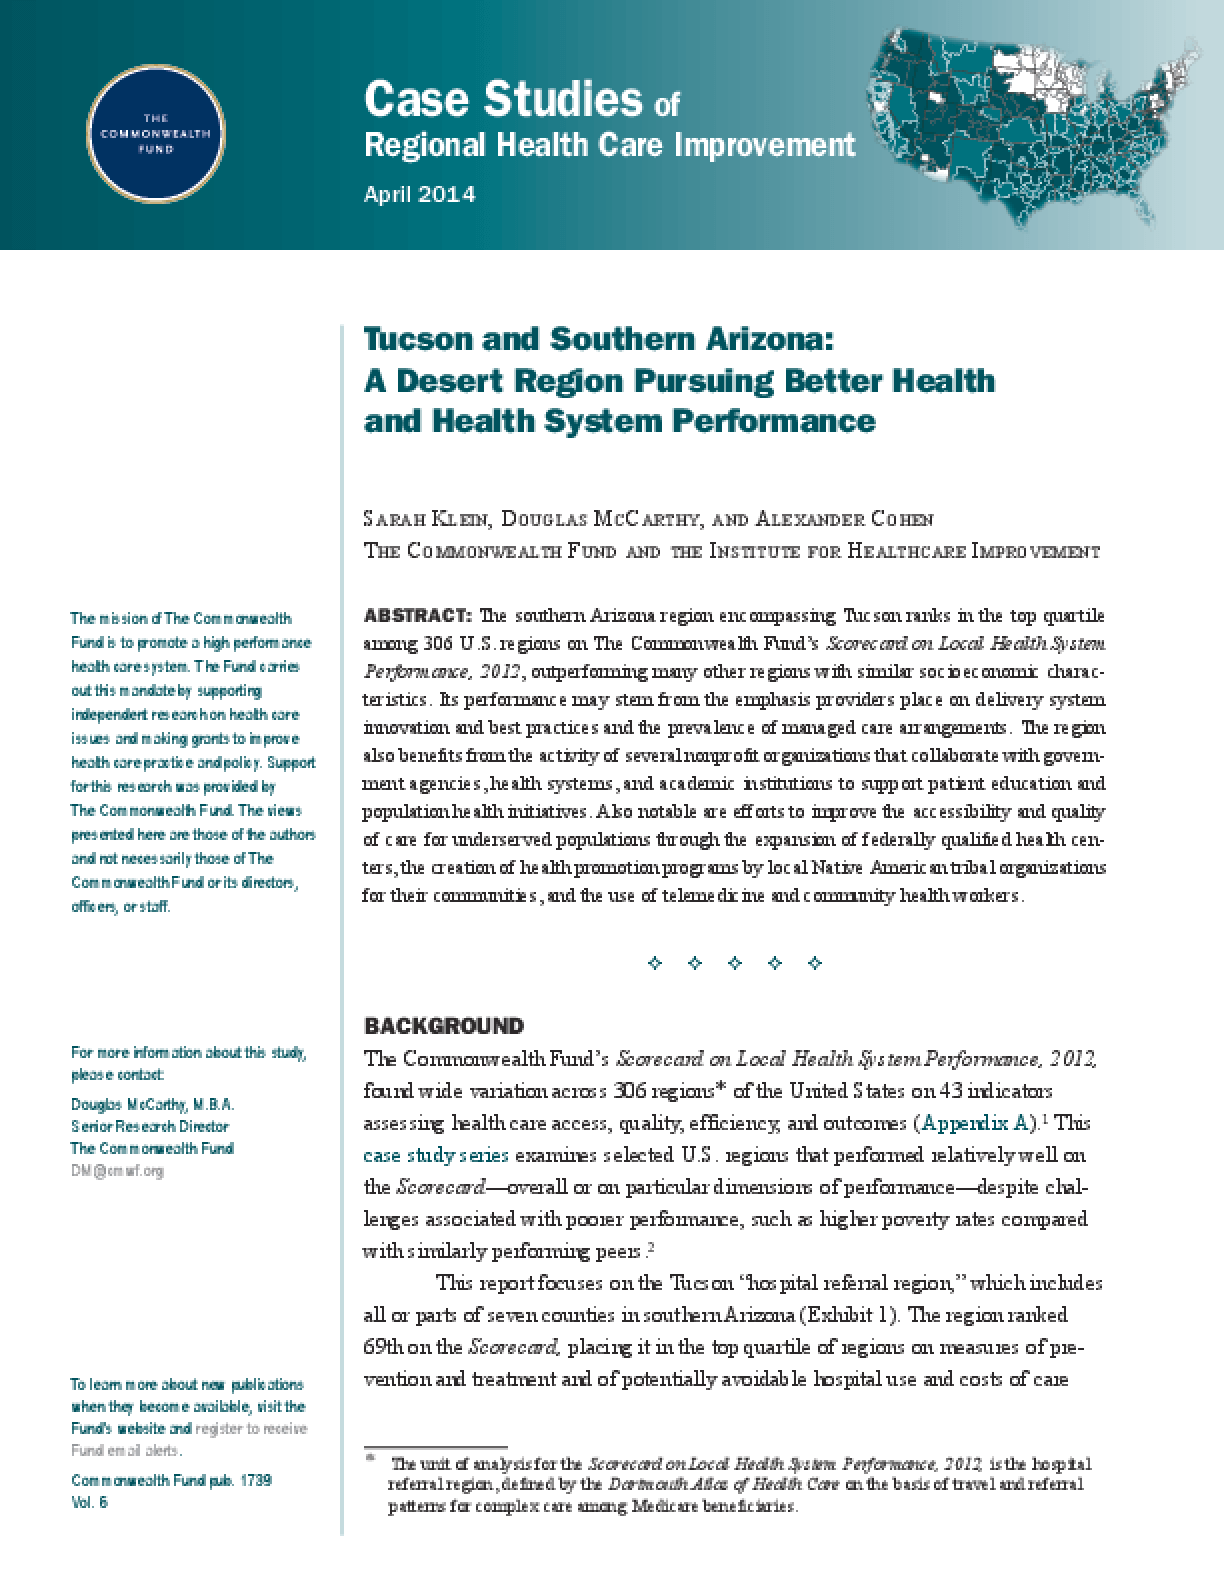 Tucson and Southern Arizona: A Desert Region Pursuing Better Health and Health System Performance